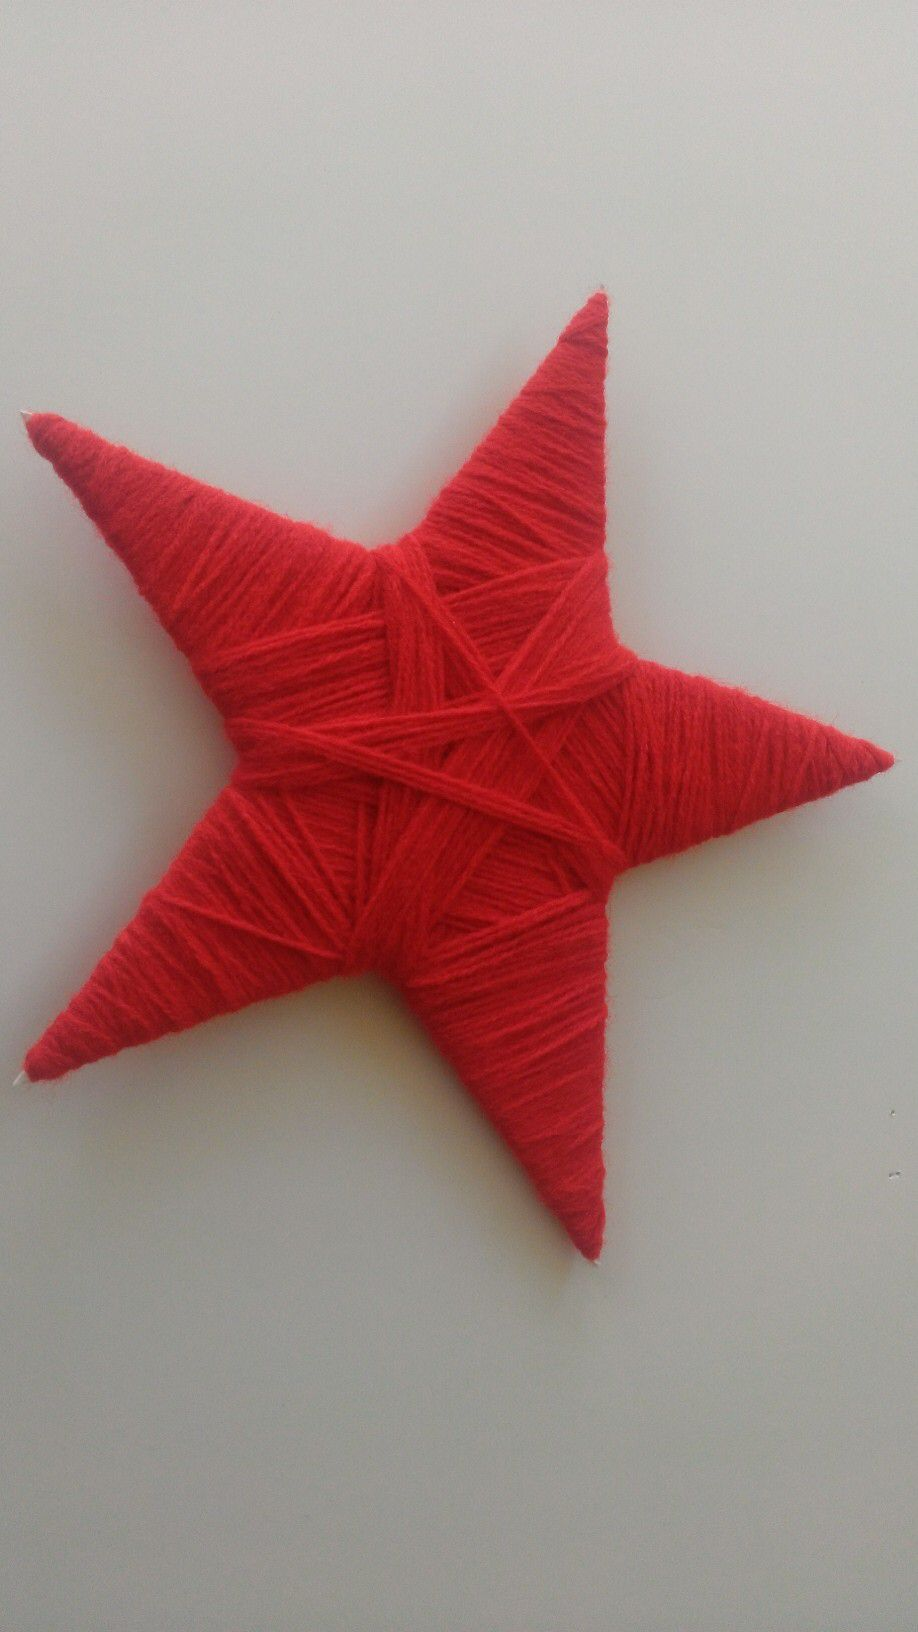 Finished star for Seasalt's knitted Christmas window display.